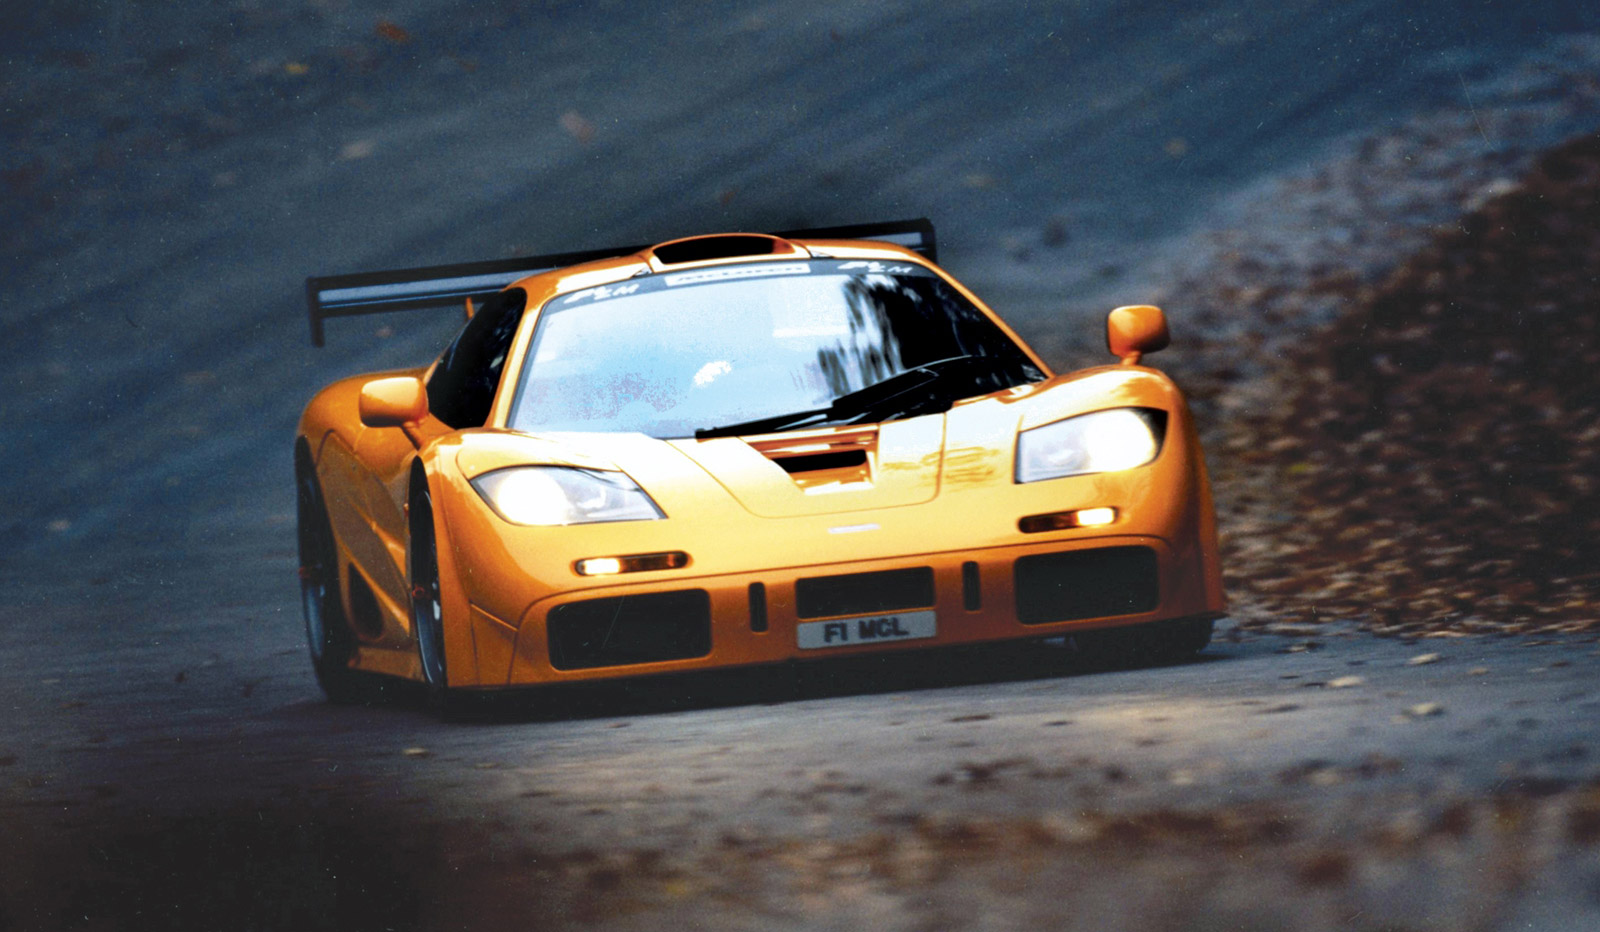 Mclaren F1 Lm Prototype S First Visit Outside The U K Is